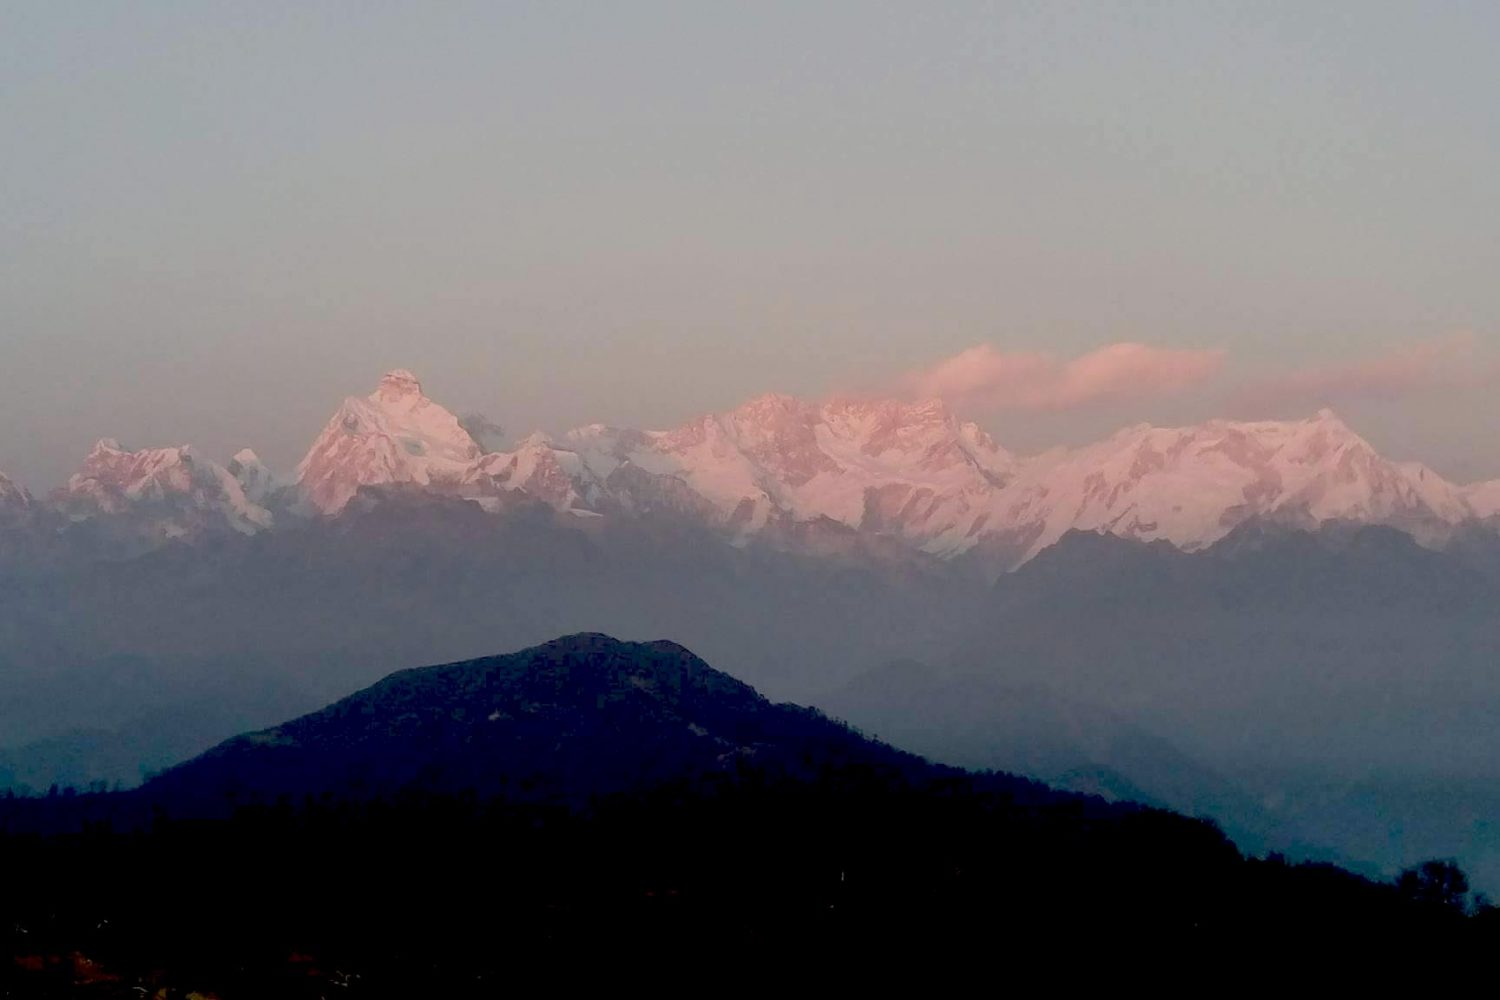 Sunset on Kanchenjunga